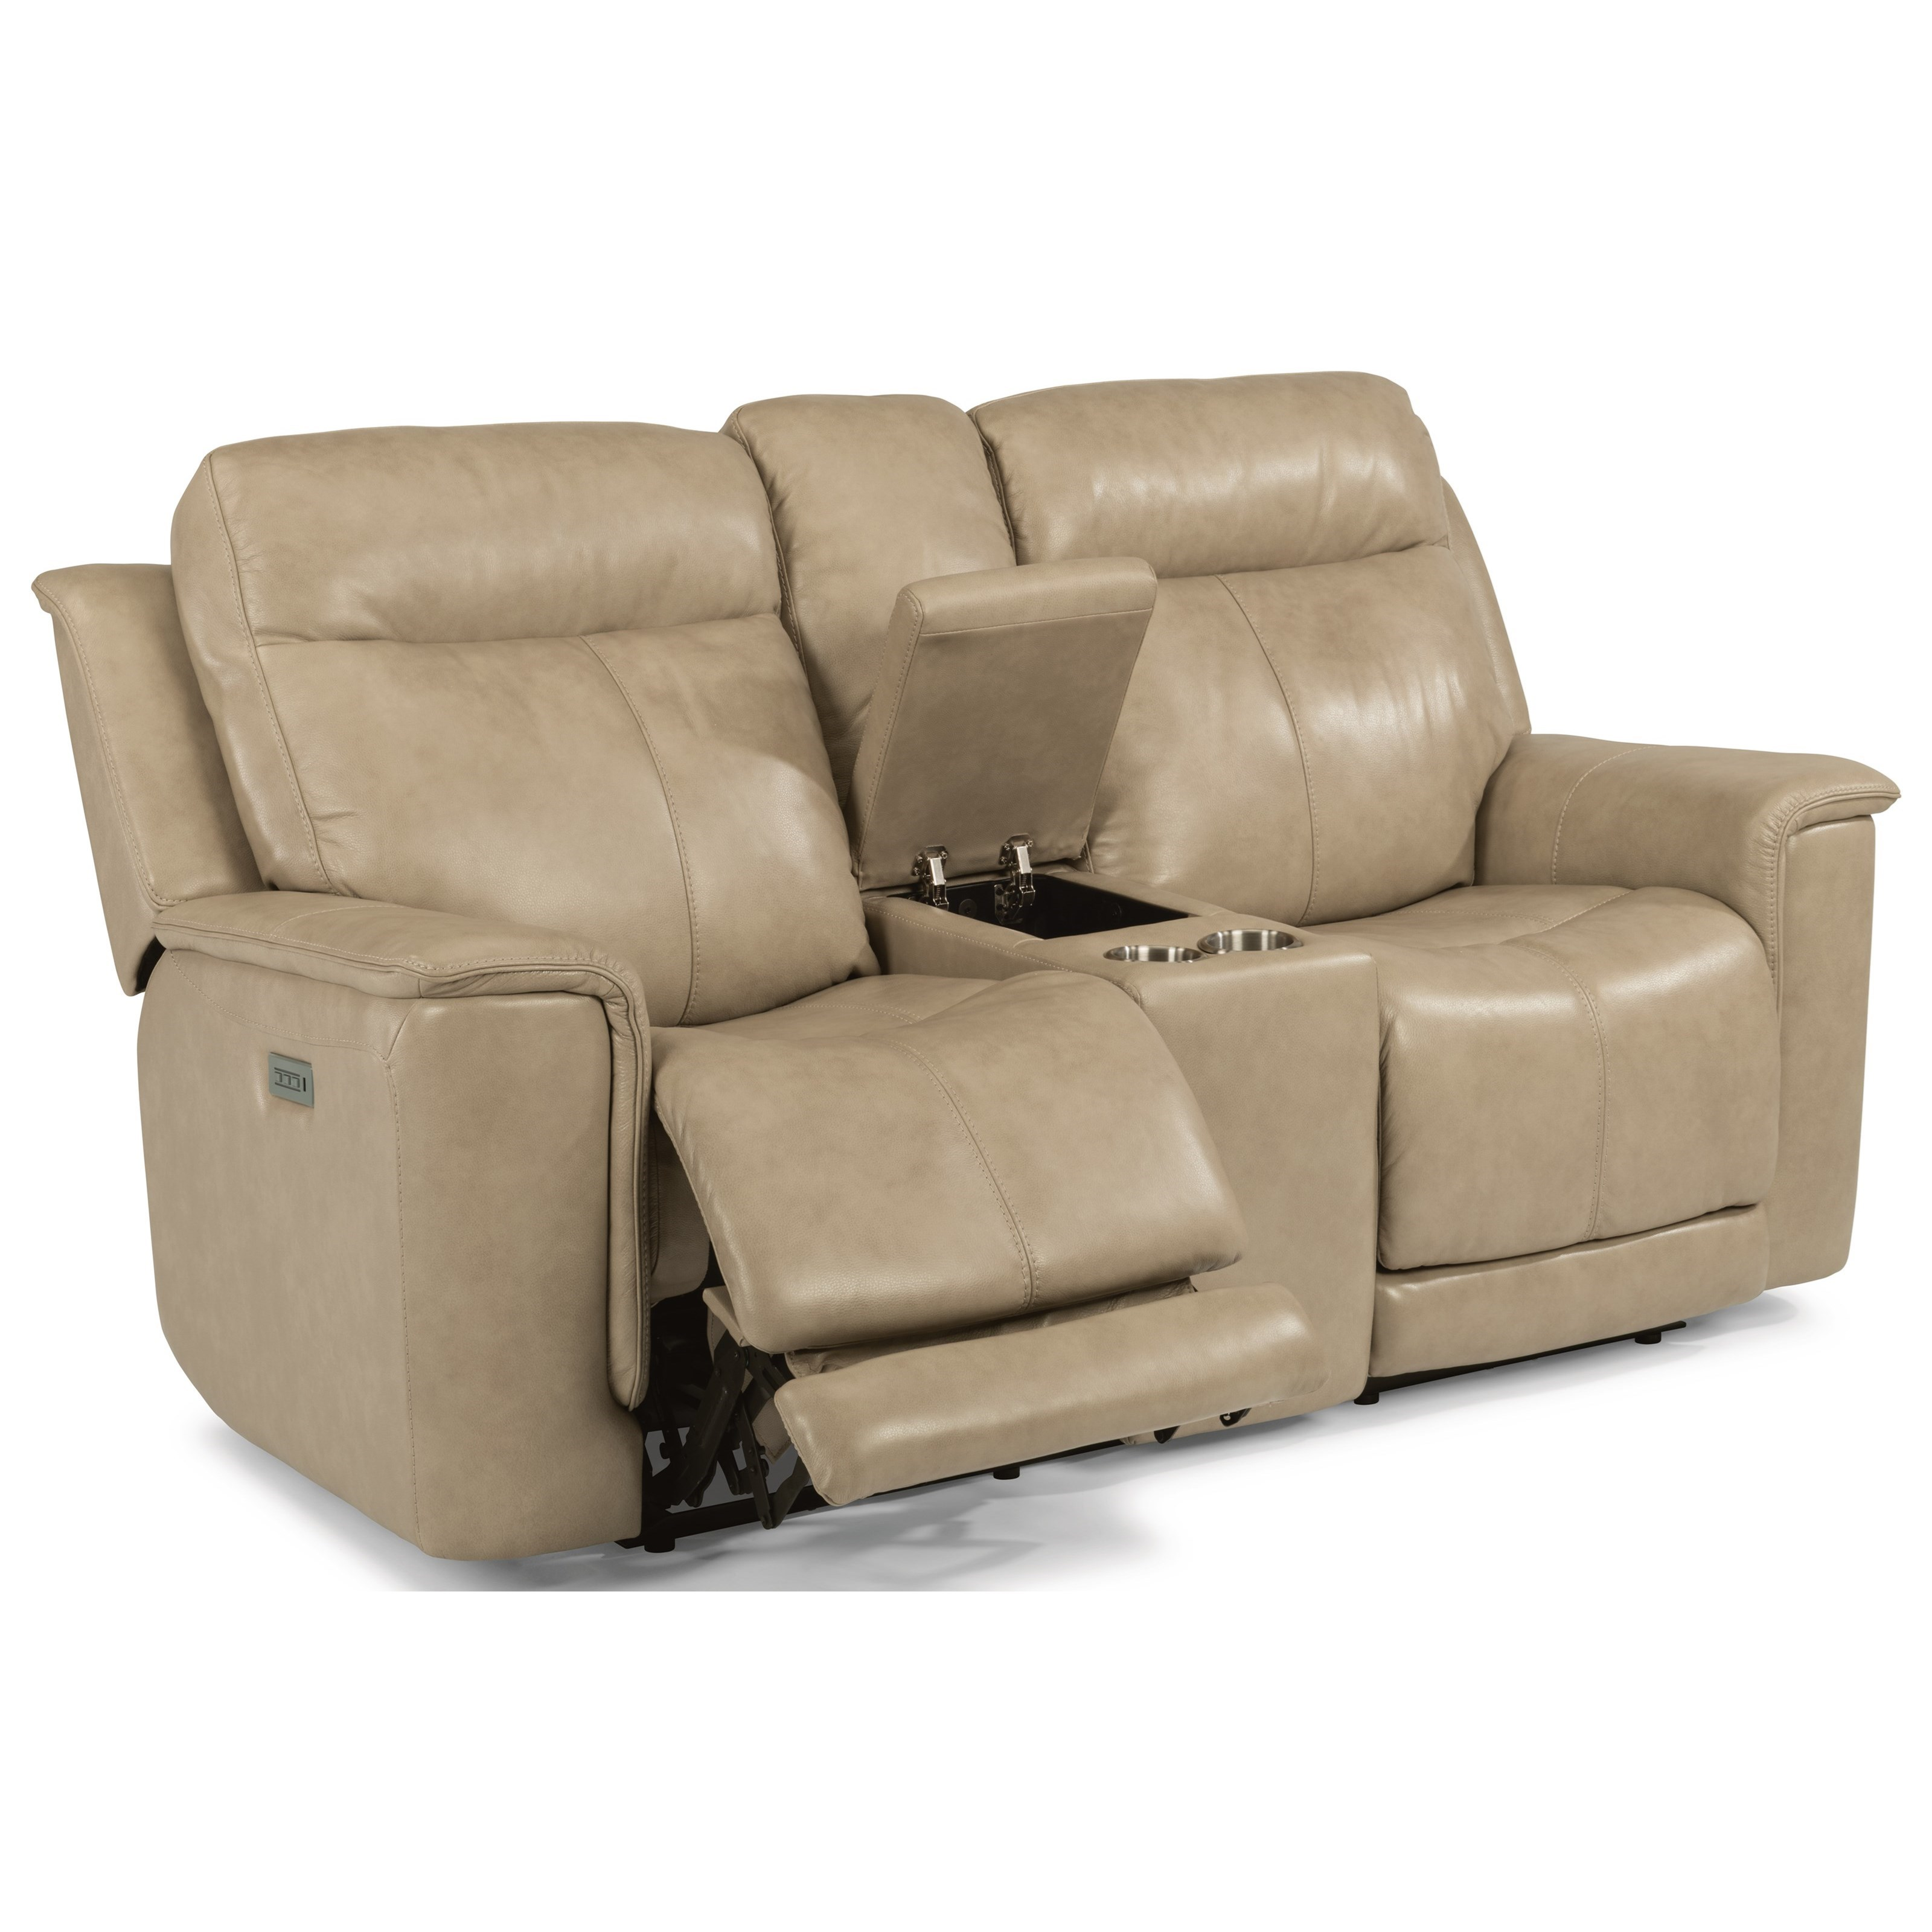 Latitudes - Miller Power Reclining Loveseat by Flexsteel at HomeWorld Furniture